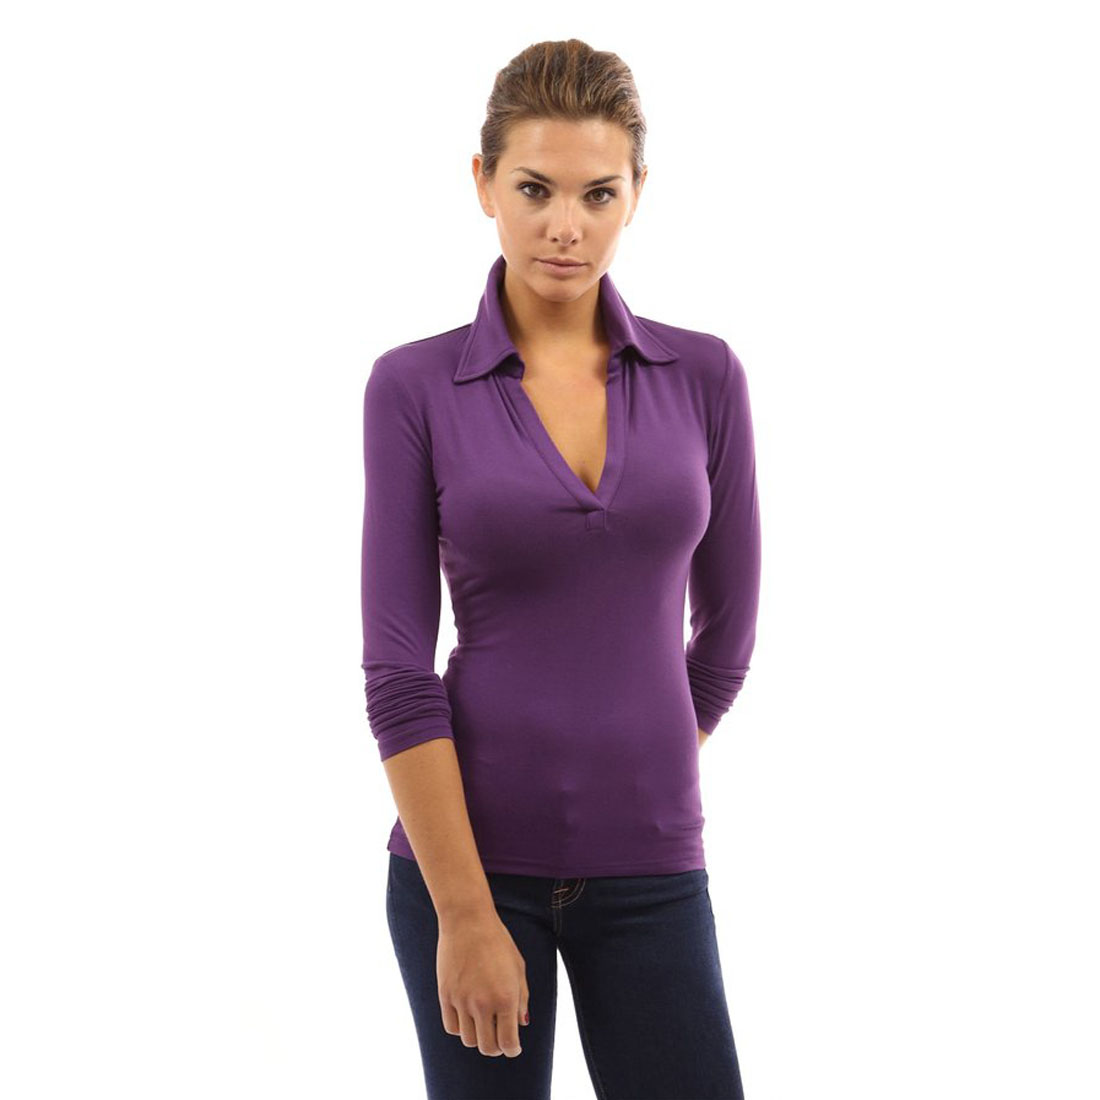 Shop Best V-Neck T-Shirts, Tops, Shirts at Old Navy Online. The women v neck t shirts from Old Navy offer simple yet impacting wardrobe staples that make looking wonderful a cinch. Shipping is on us! FREE on orders of $50 or more. FREE Returns on All Orders. 4 Brands, One Easy Checkout.